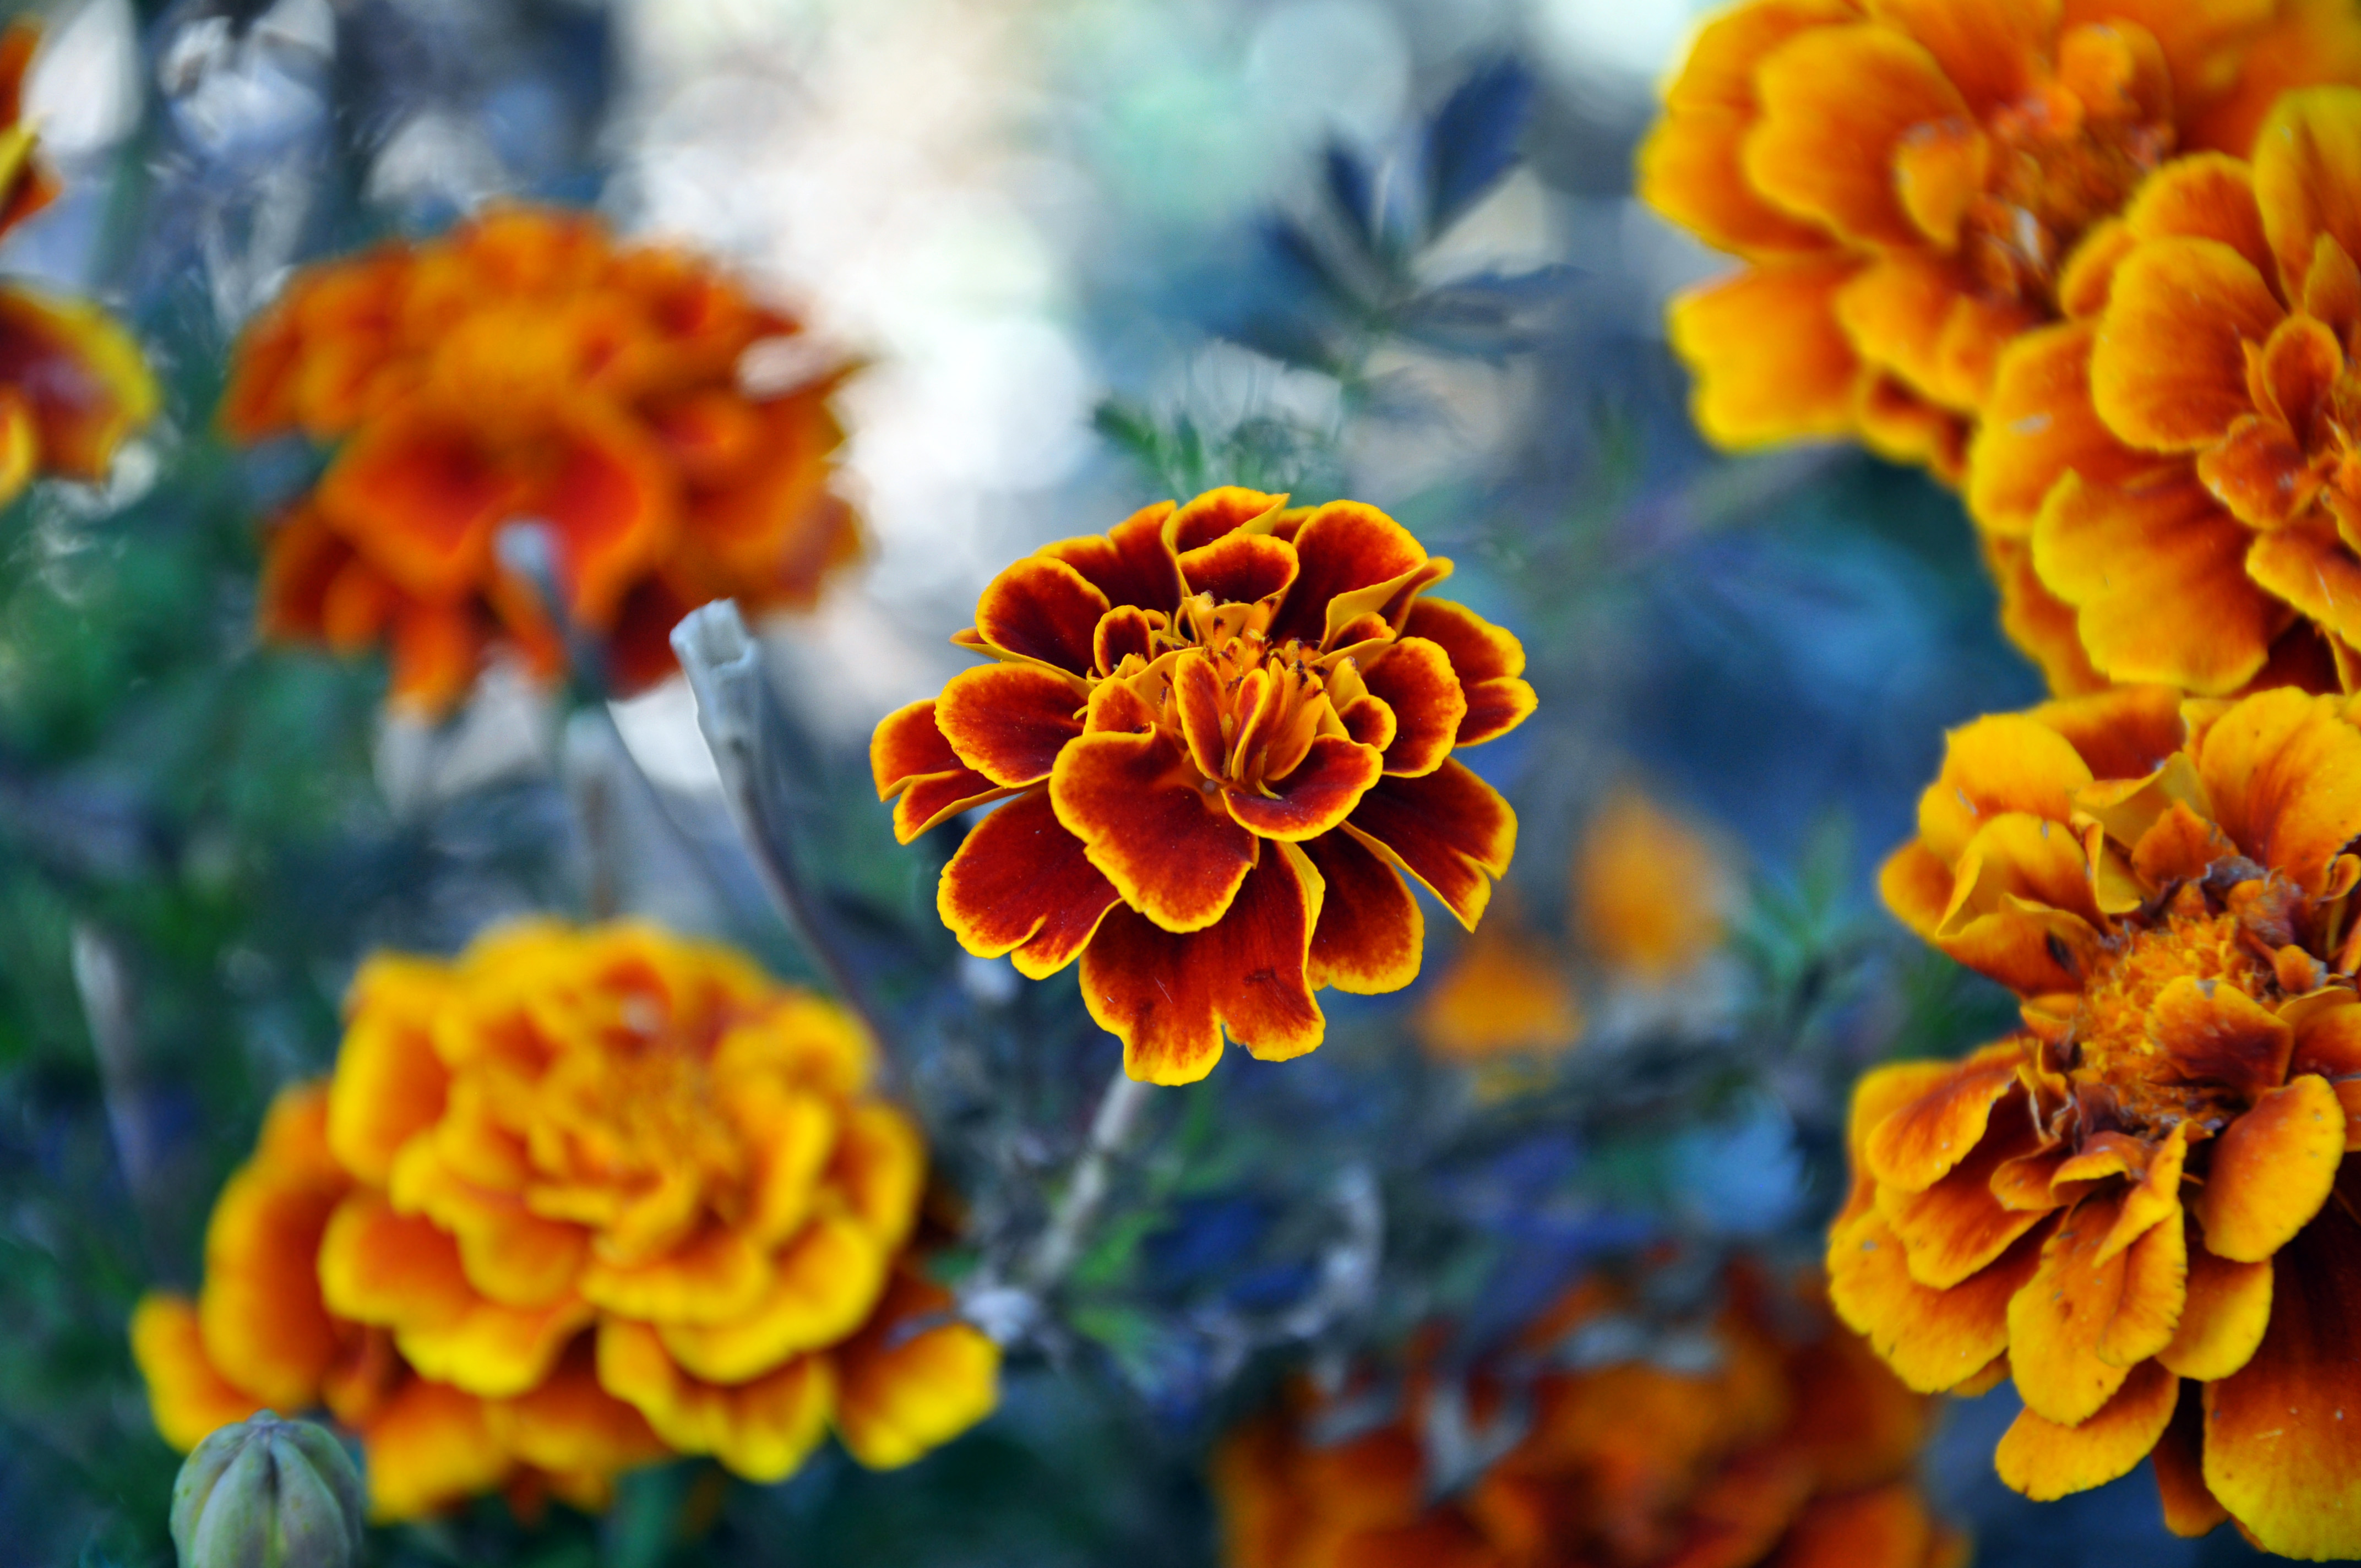 Marigold by sugoidave